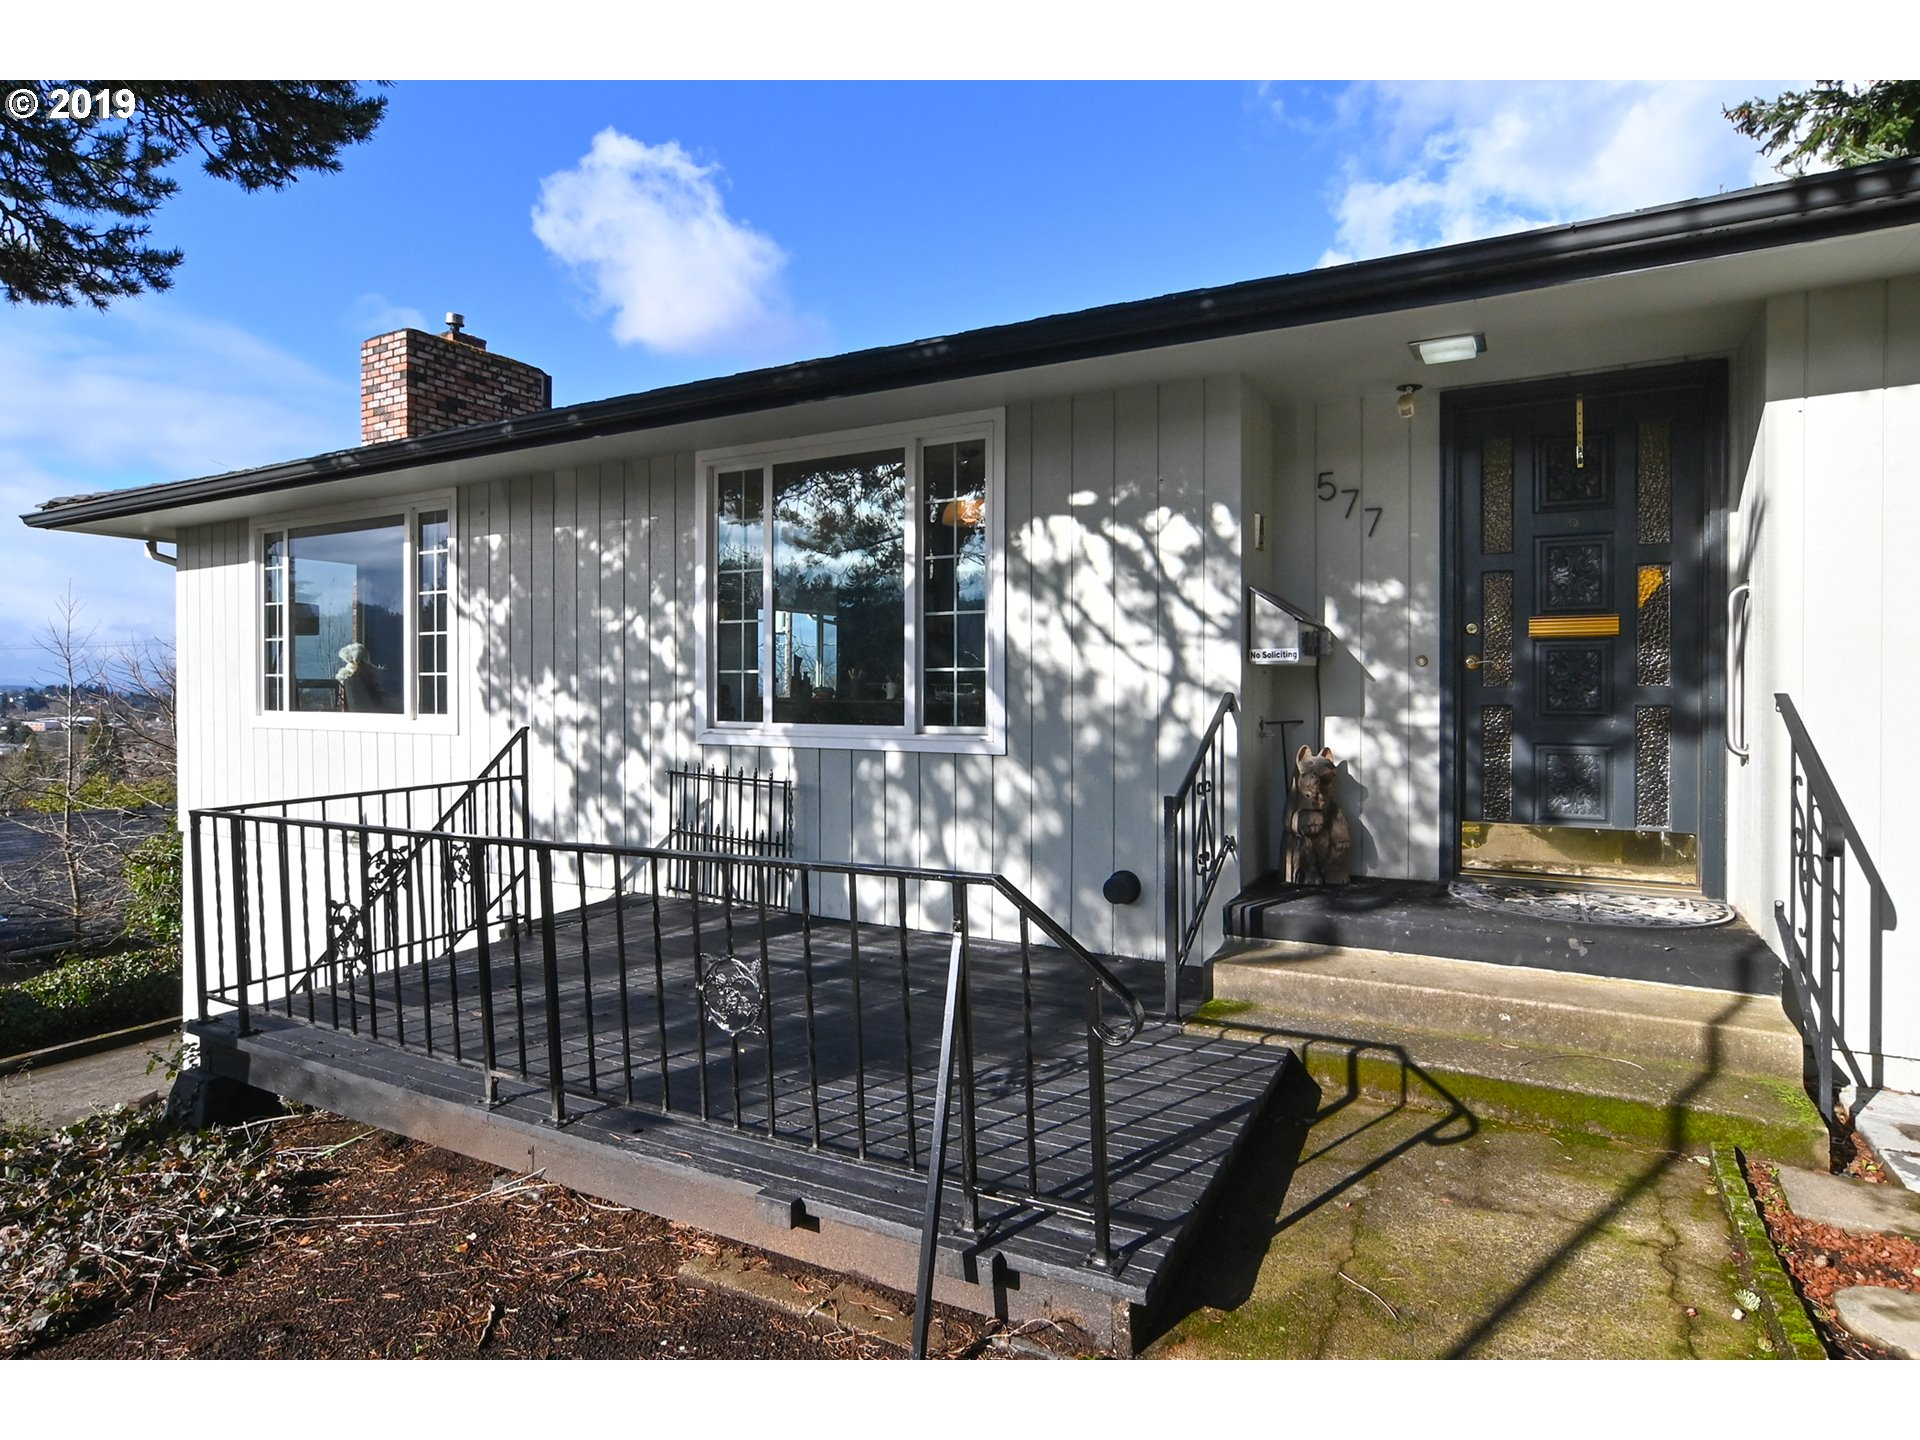 Photo of 577 W 25TH PL Eugene OR 97405